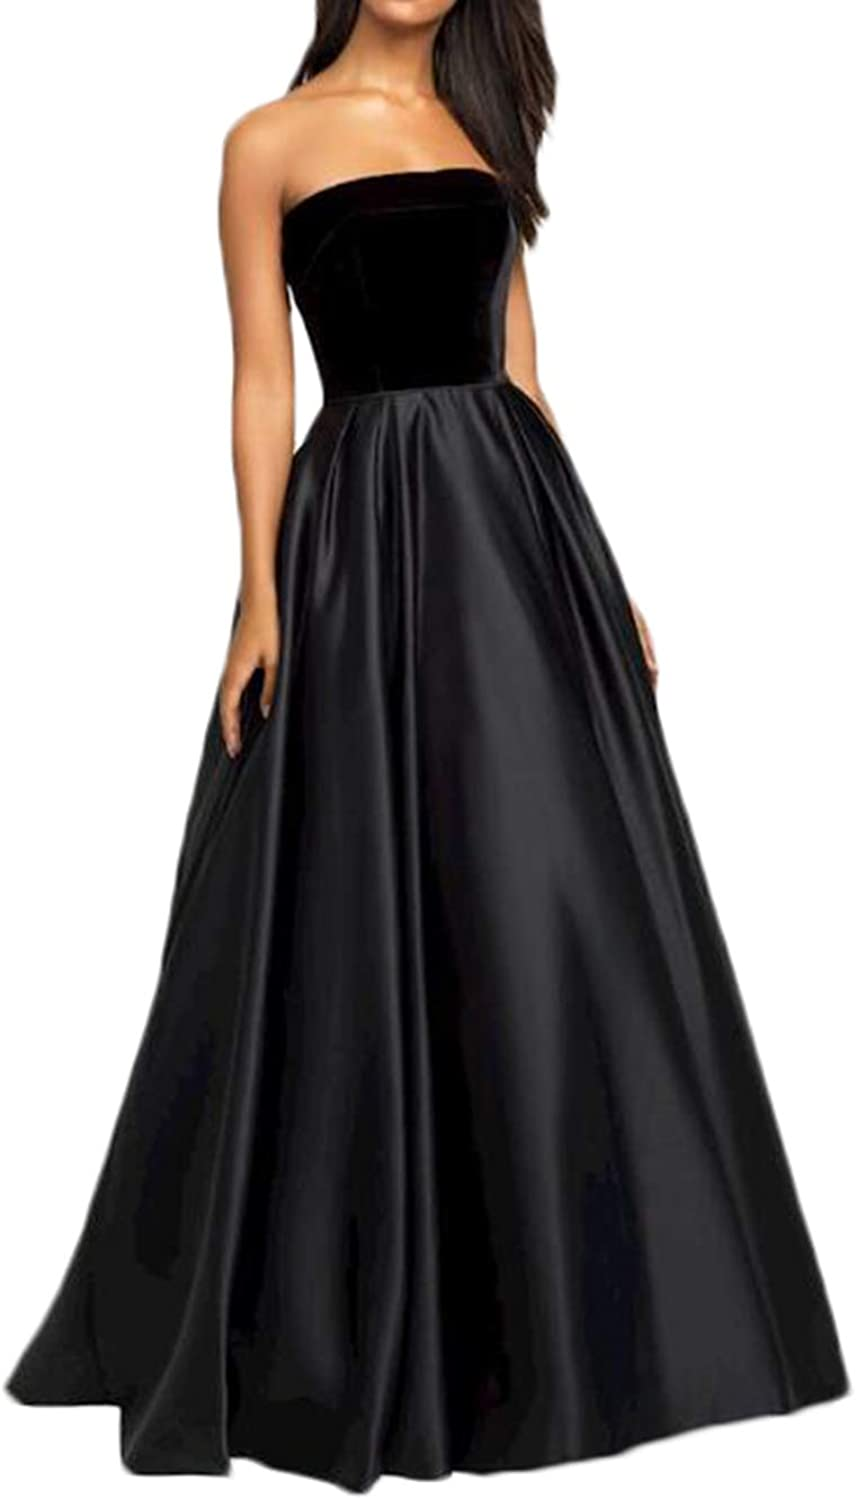 Alilith.Z Sexy Strapless Prom Dresses 2019 Long Velvet Top Satin Party Gowns Formal Dresses for Women Evening Ball